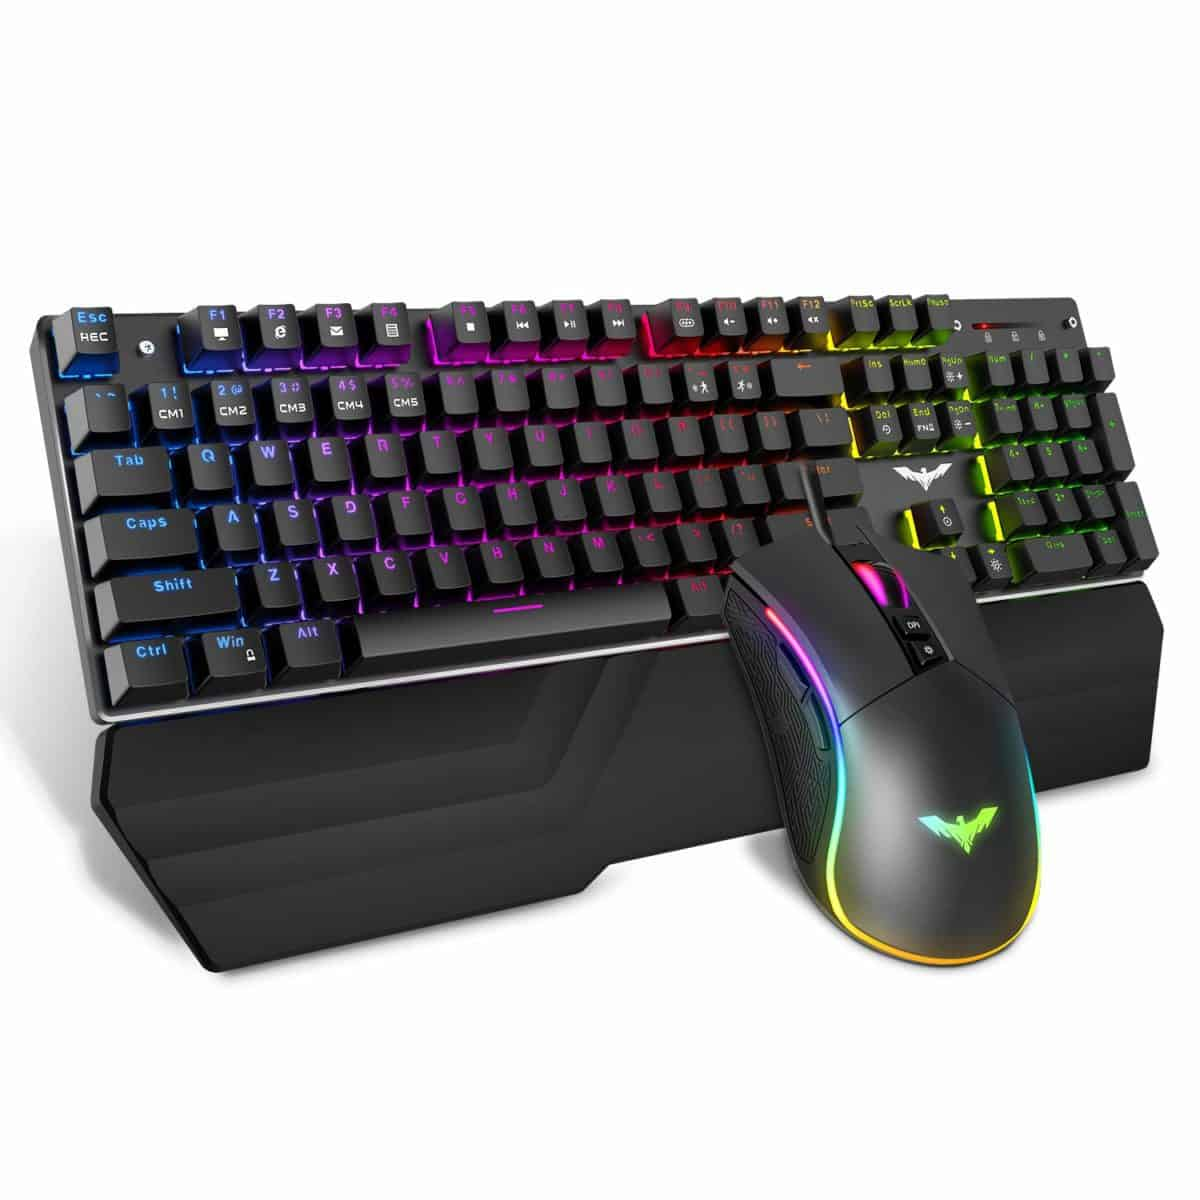 Havit Mechanical Keyboard and Mouse Combo